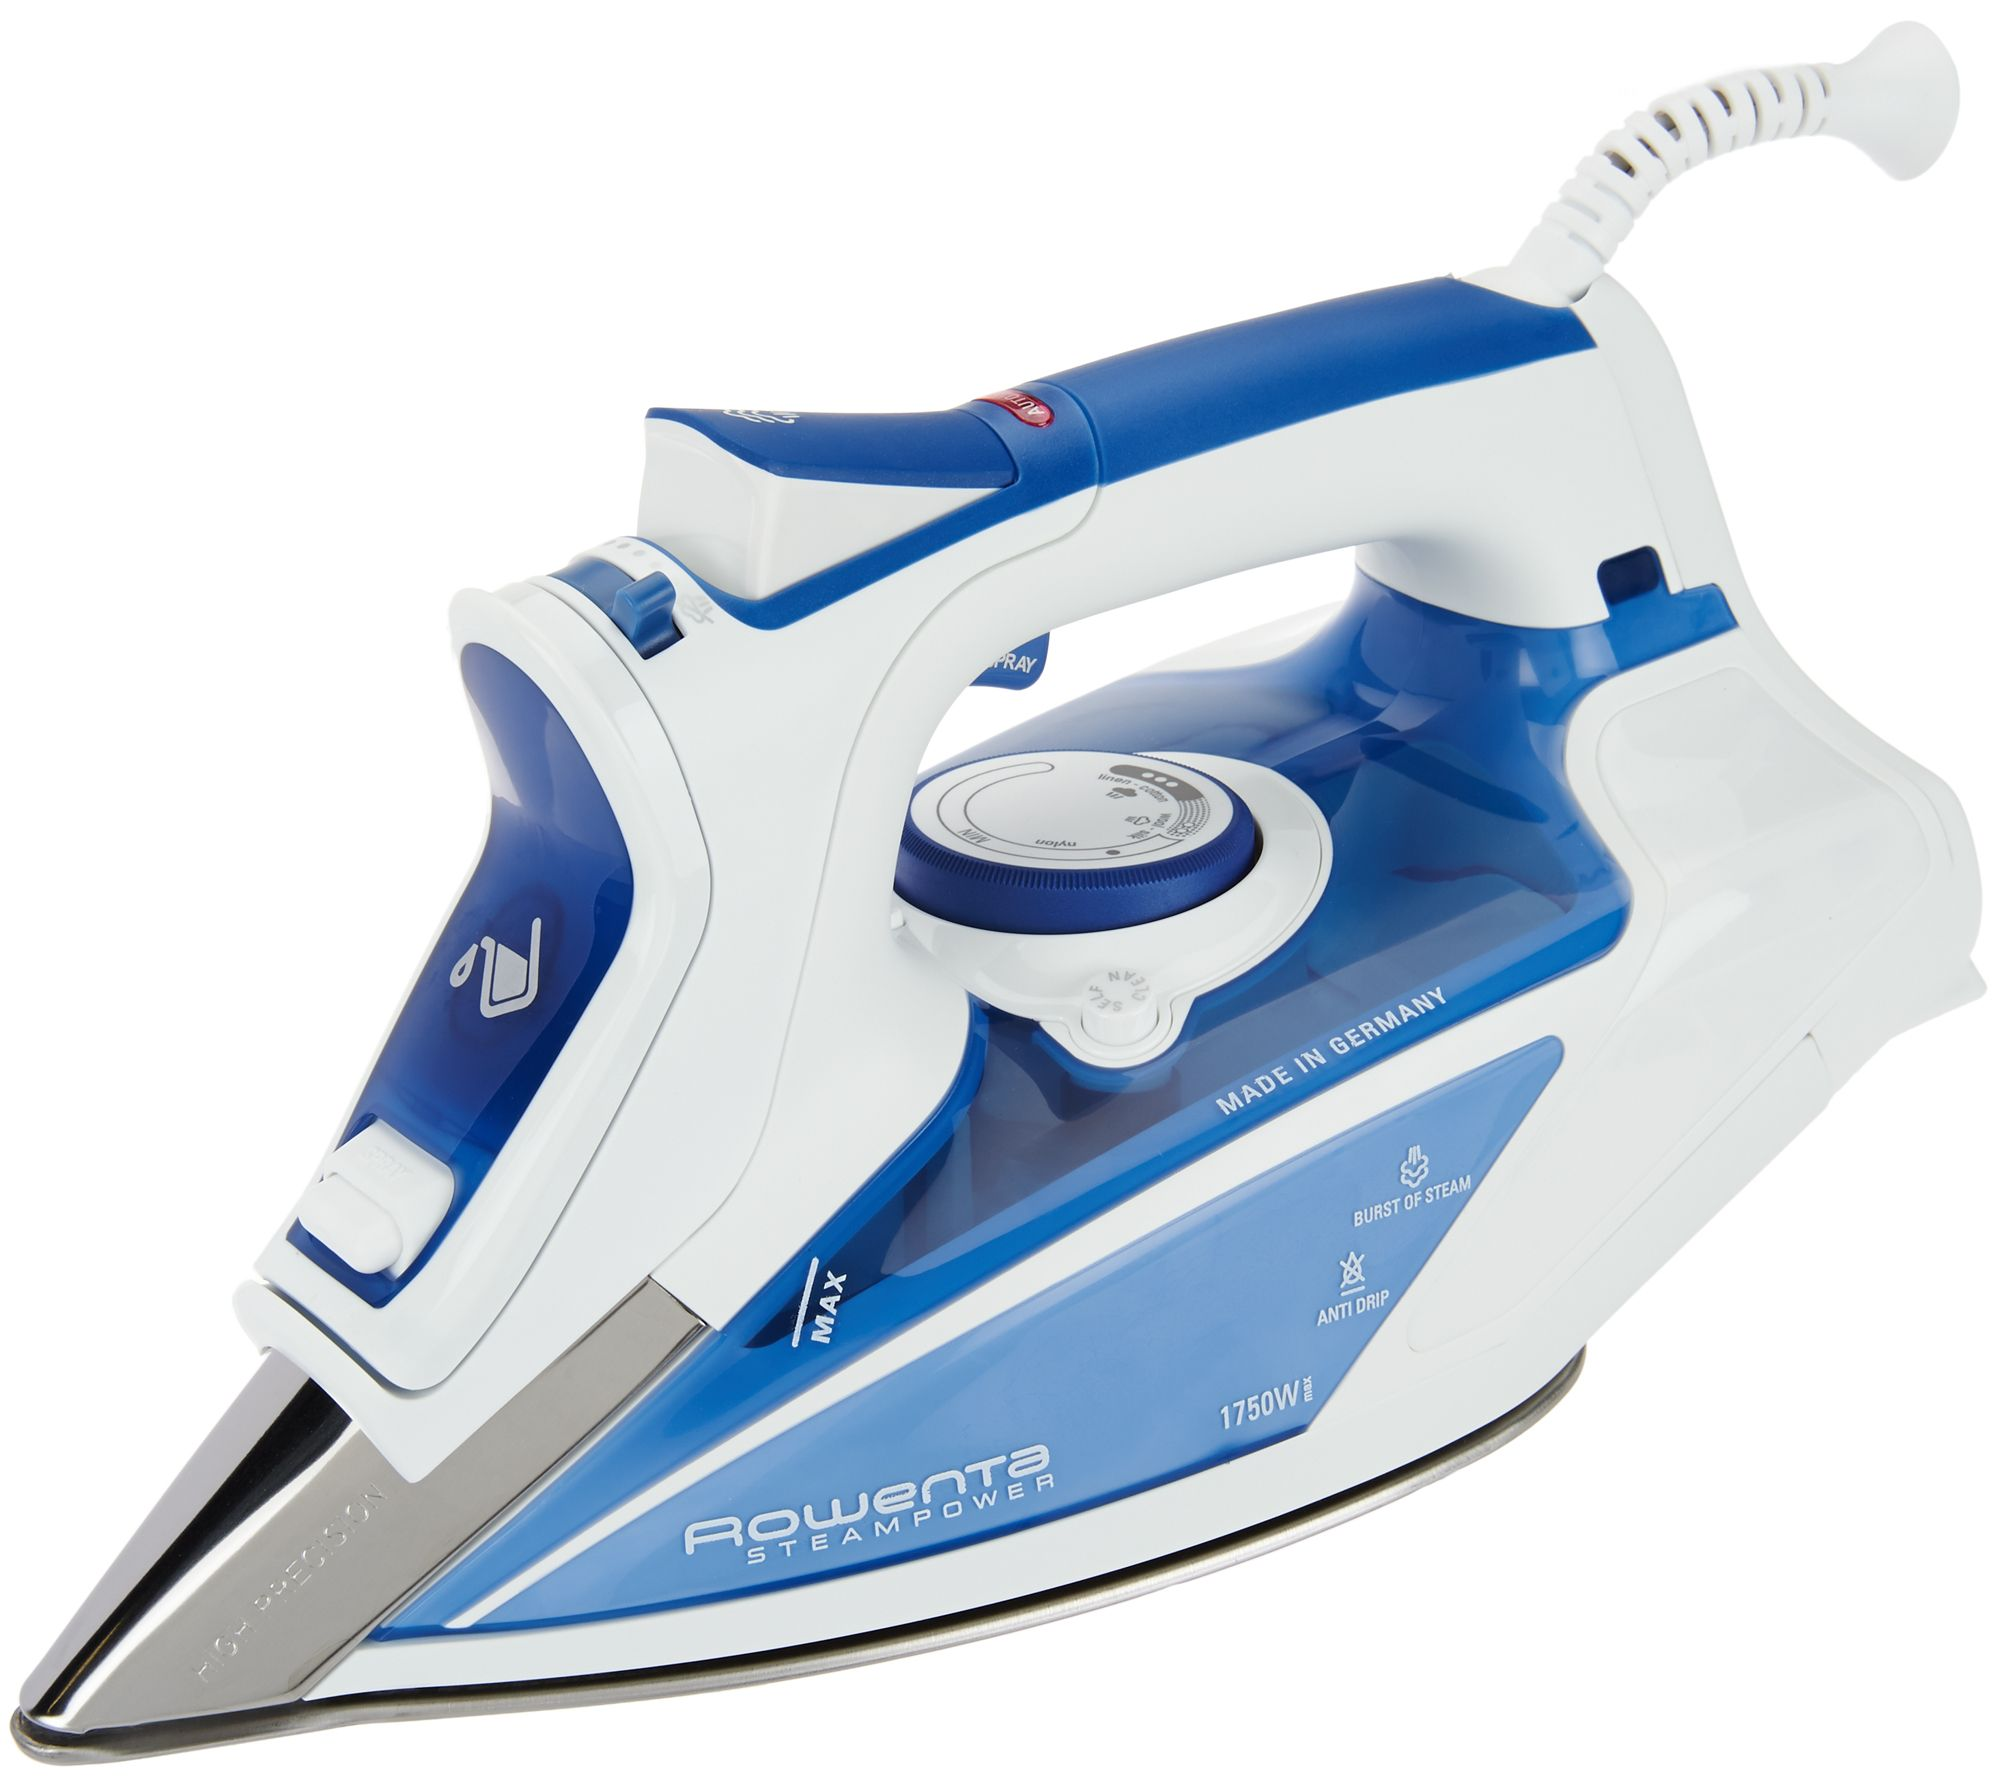 Cleaning rowenta pressure iron and steamer - Rowenta Steam Power 1750w Iron W Precision Tip Soleplate Page 1 Qvc Com